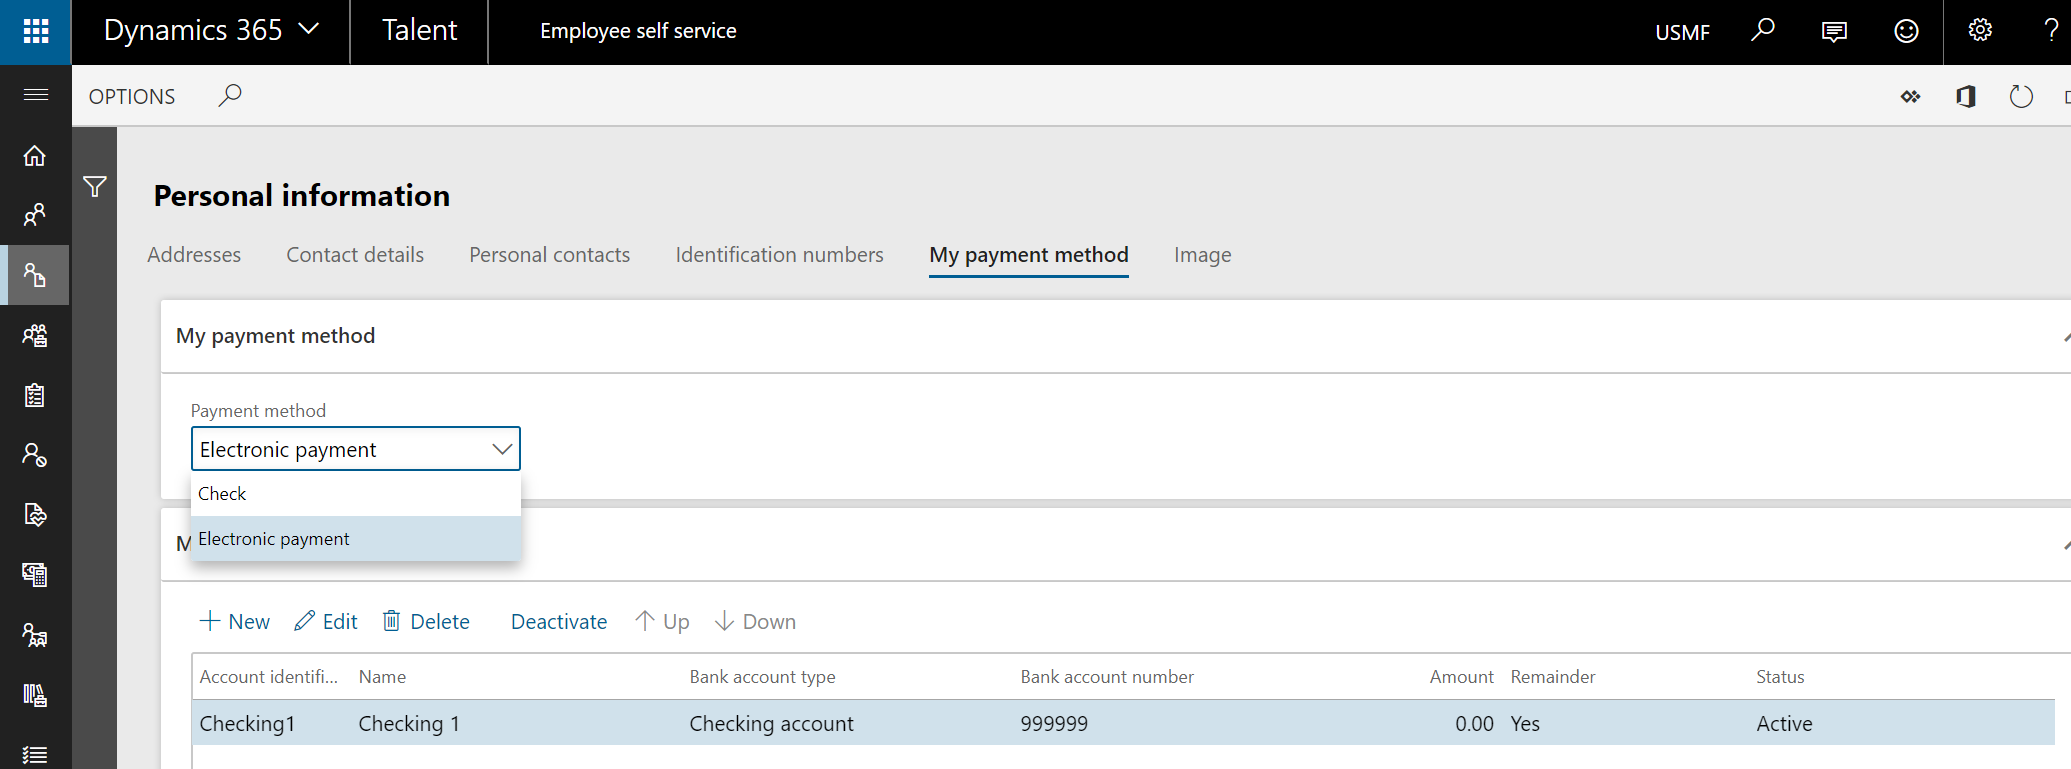 Personal information - My payment method